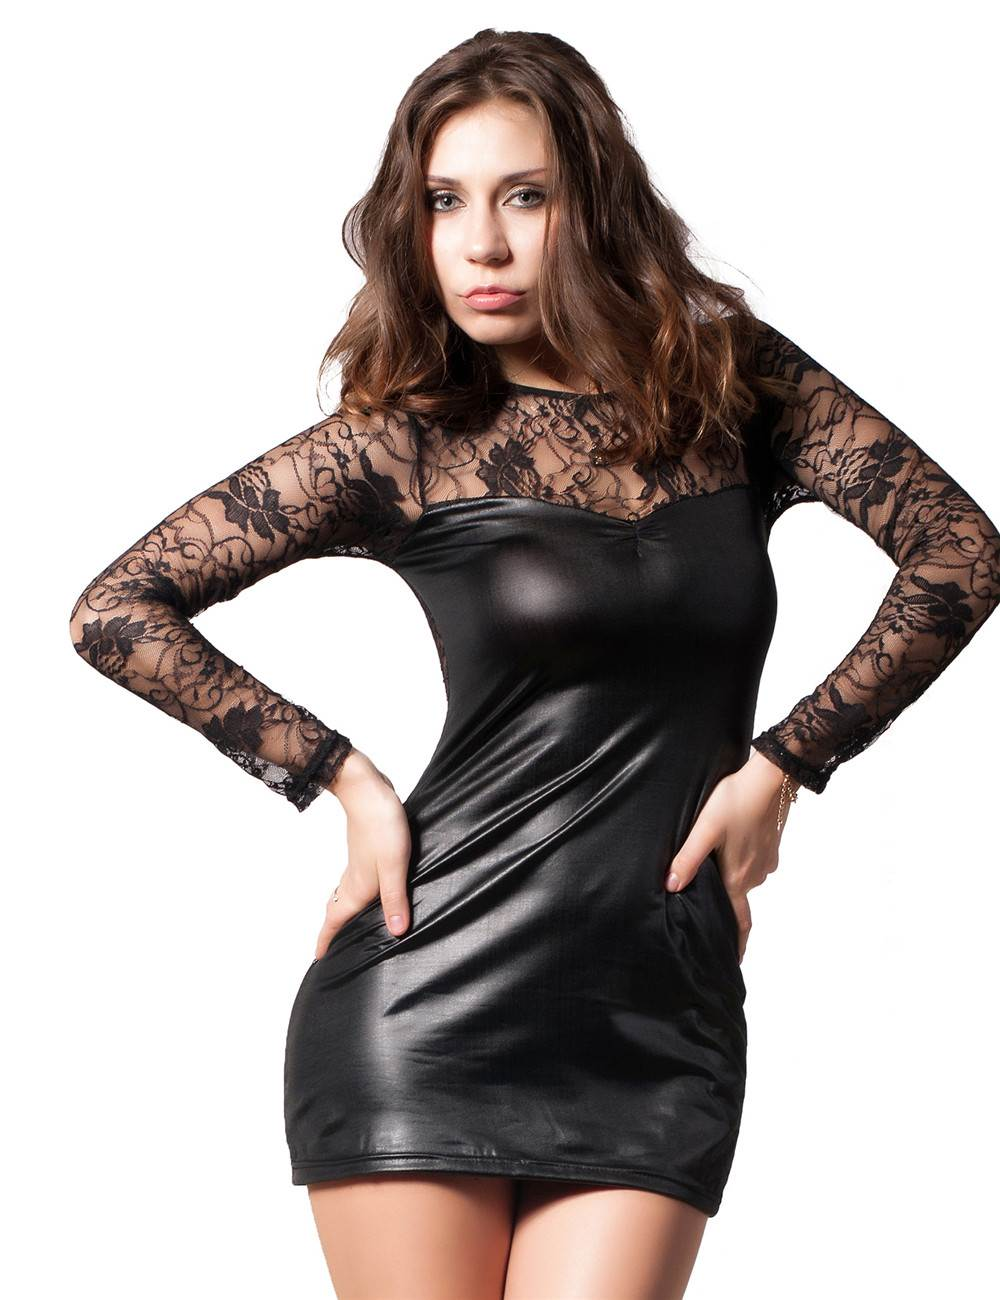 009b6f192d86c Cheap price wholesale black sexy lace leather dress for women -  ohyeah888.com